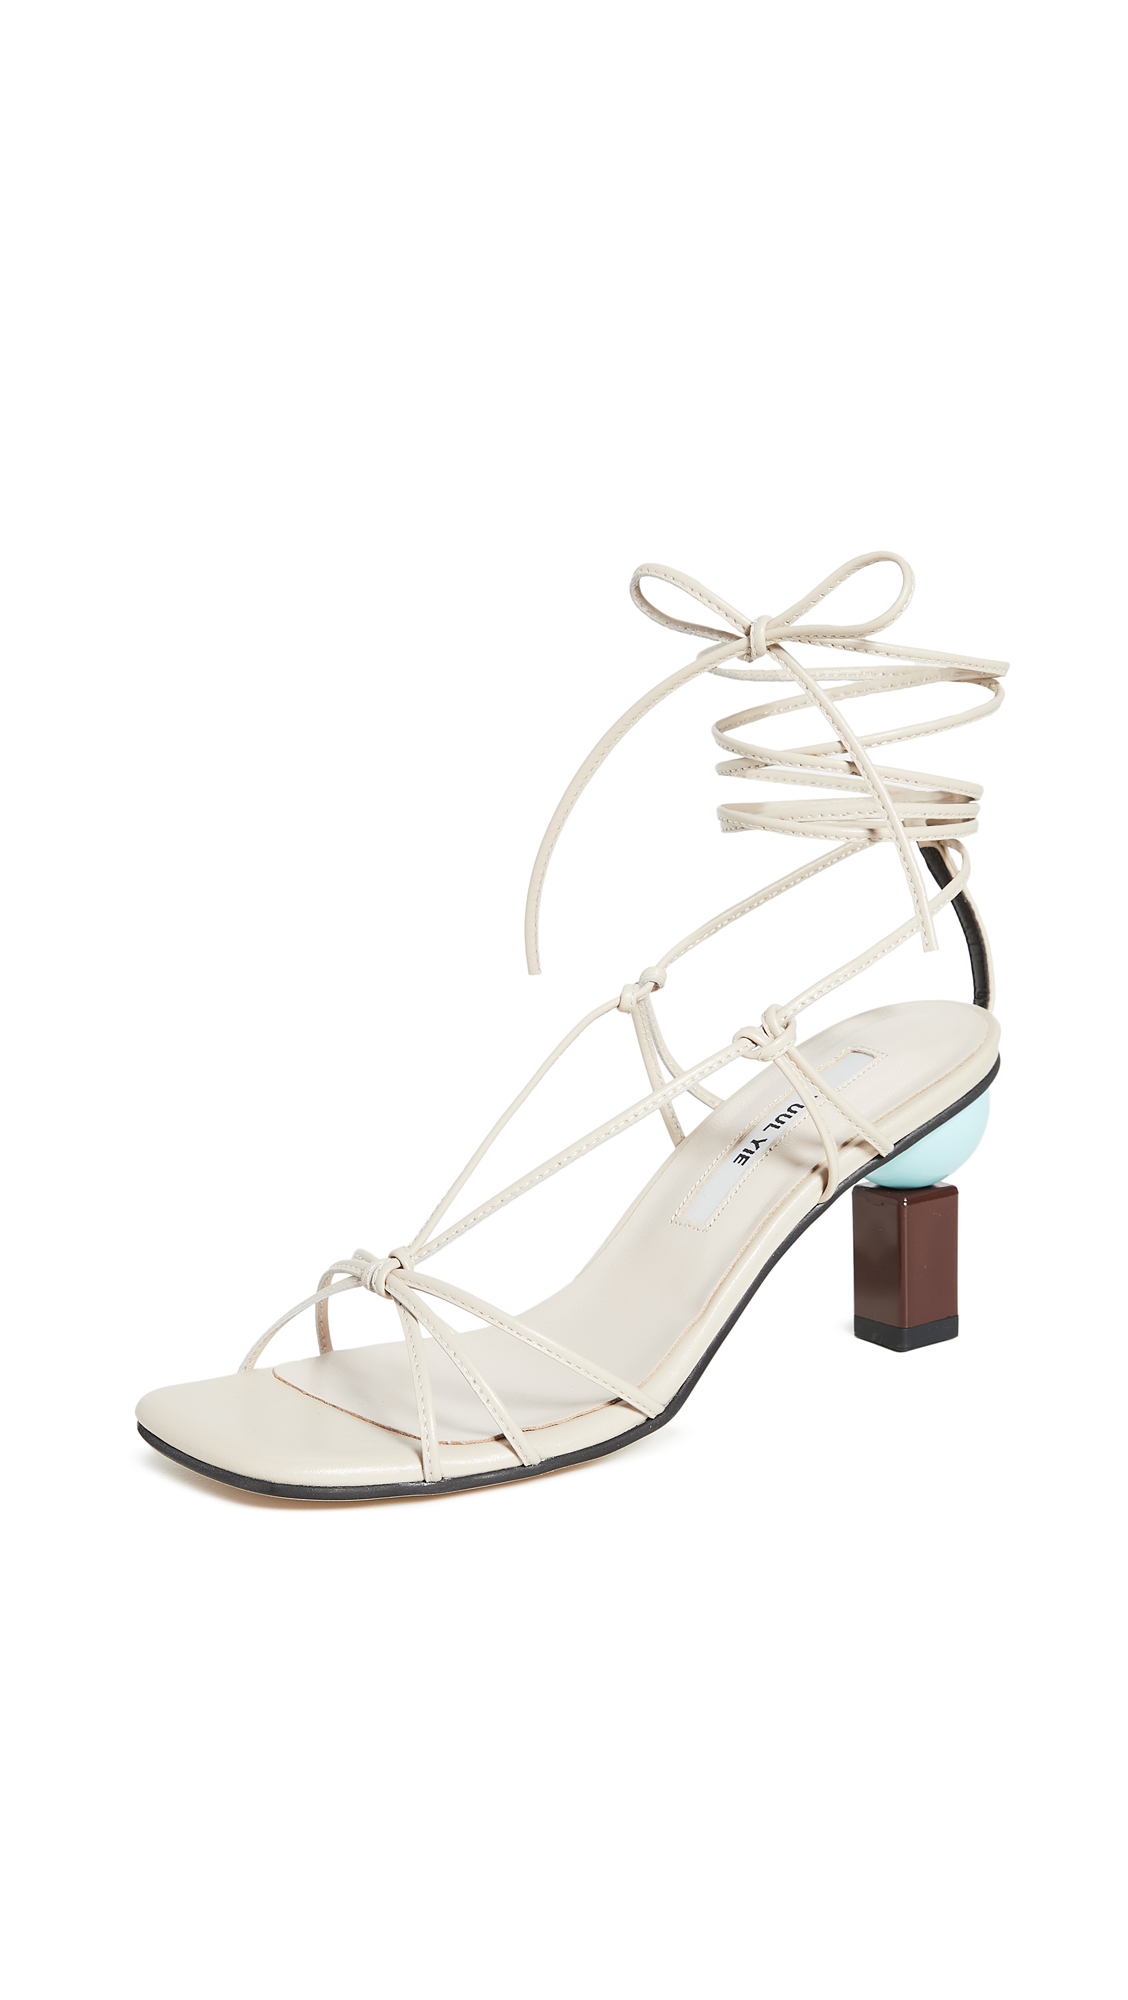 Buy Yuul Yie Trophy Lace-Up Sandals online, shop Yuul Yie